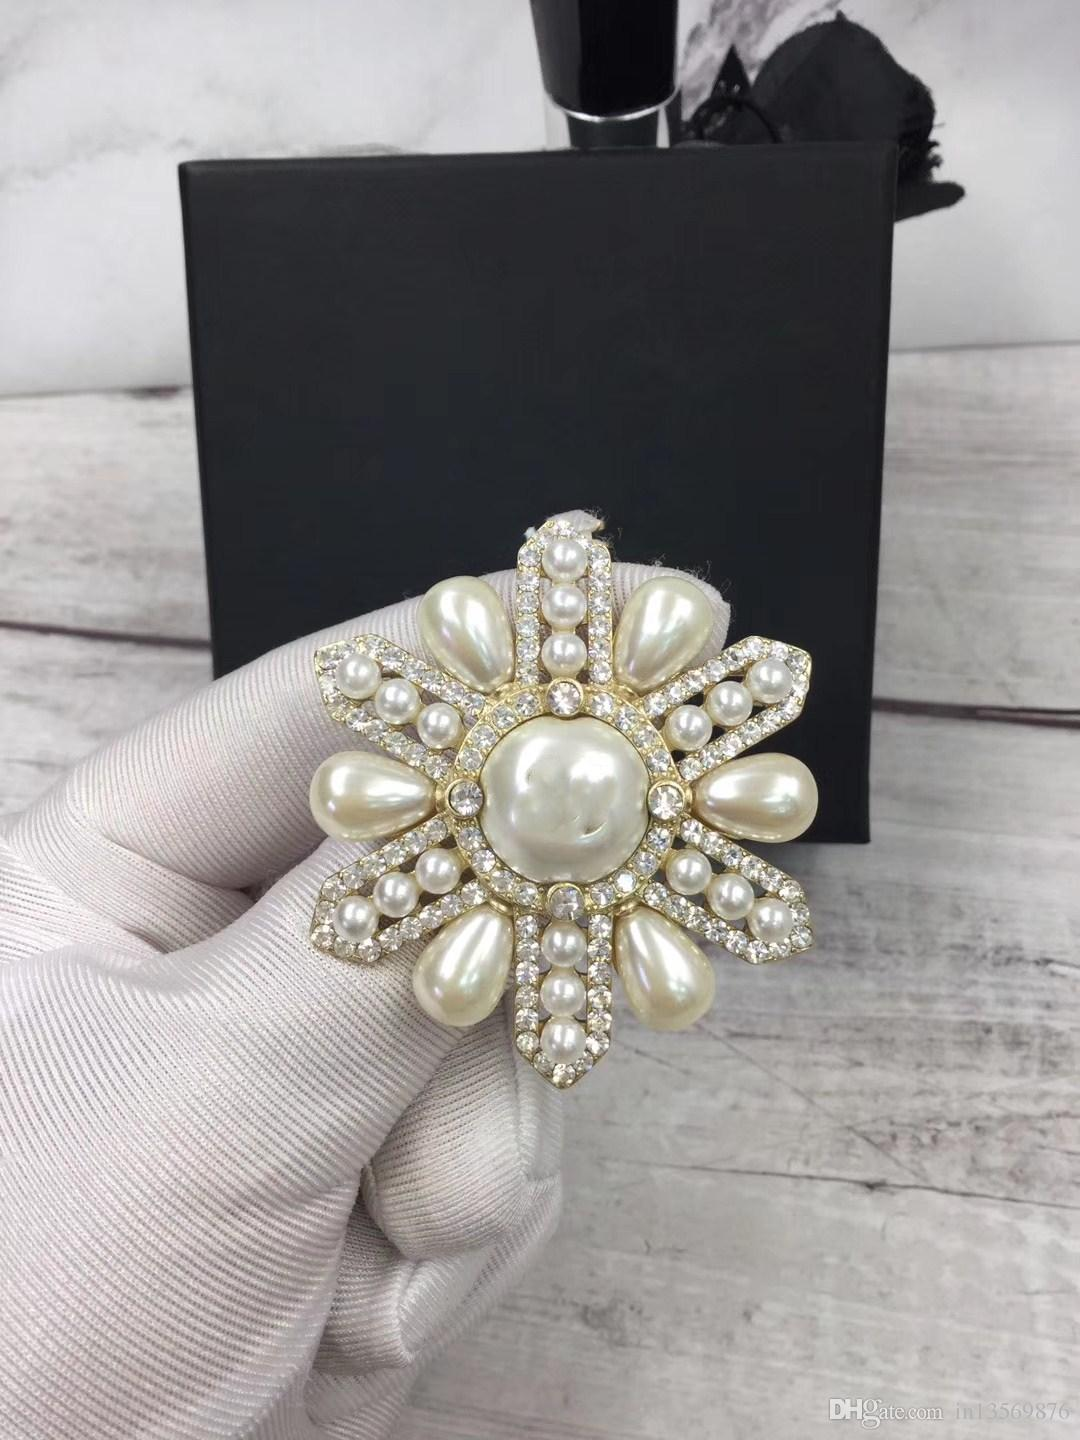 fashion luxury women's female's ladies stamped cross pearls crystals hollow out brooches pins with box free shipping